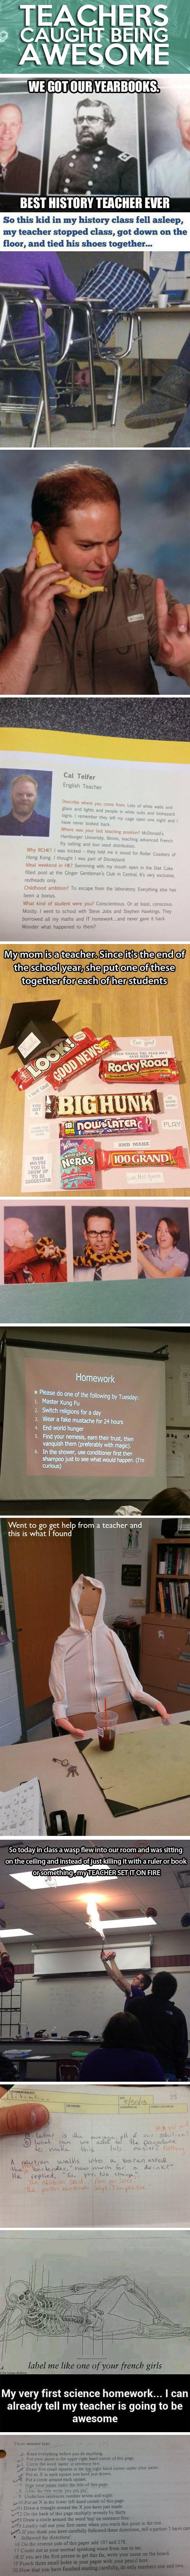 funny-awesome-teachers-compilation